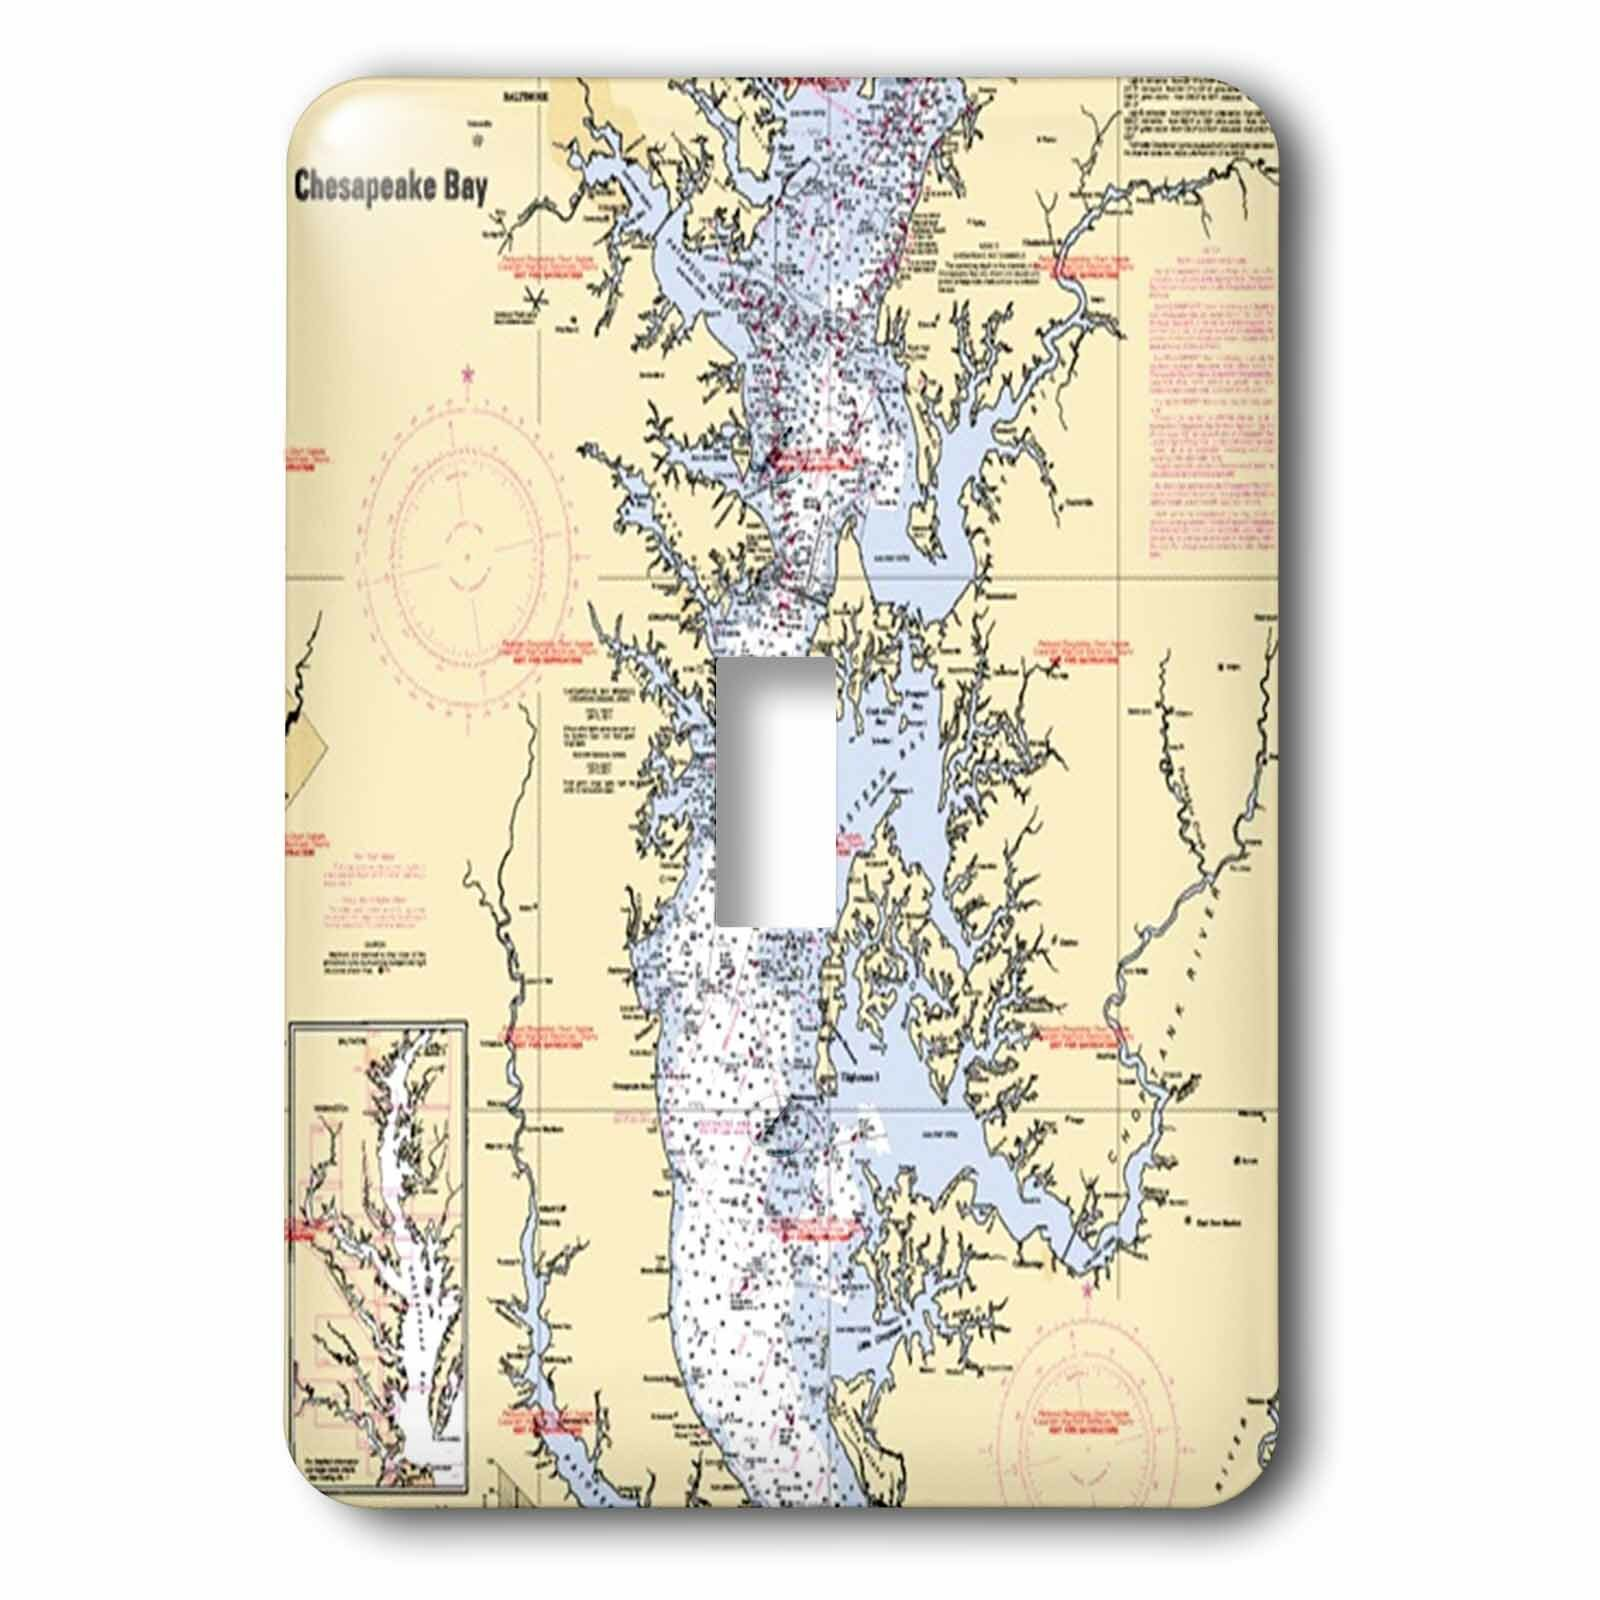 3drose Chesapeake Bay Nautical Chart 1 Gang Toggle Light Switch Wall Plate Wayfair